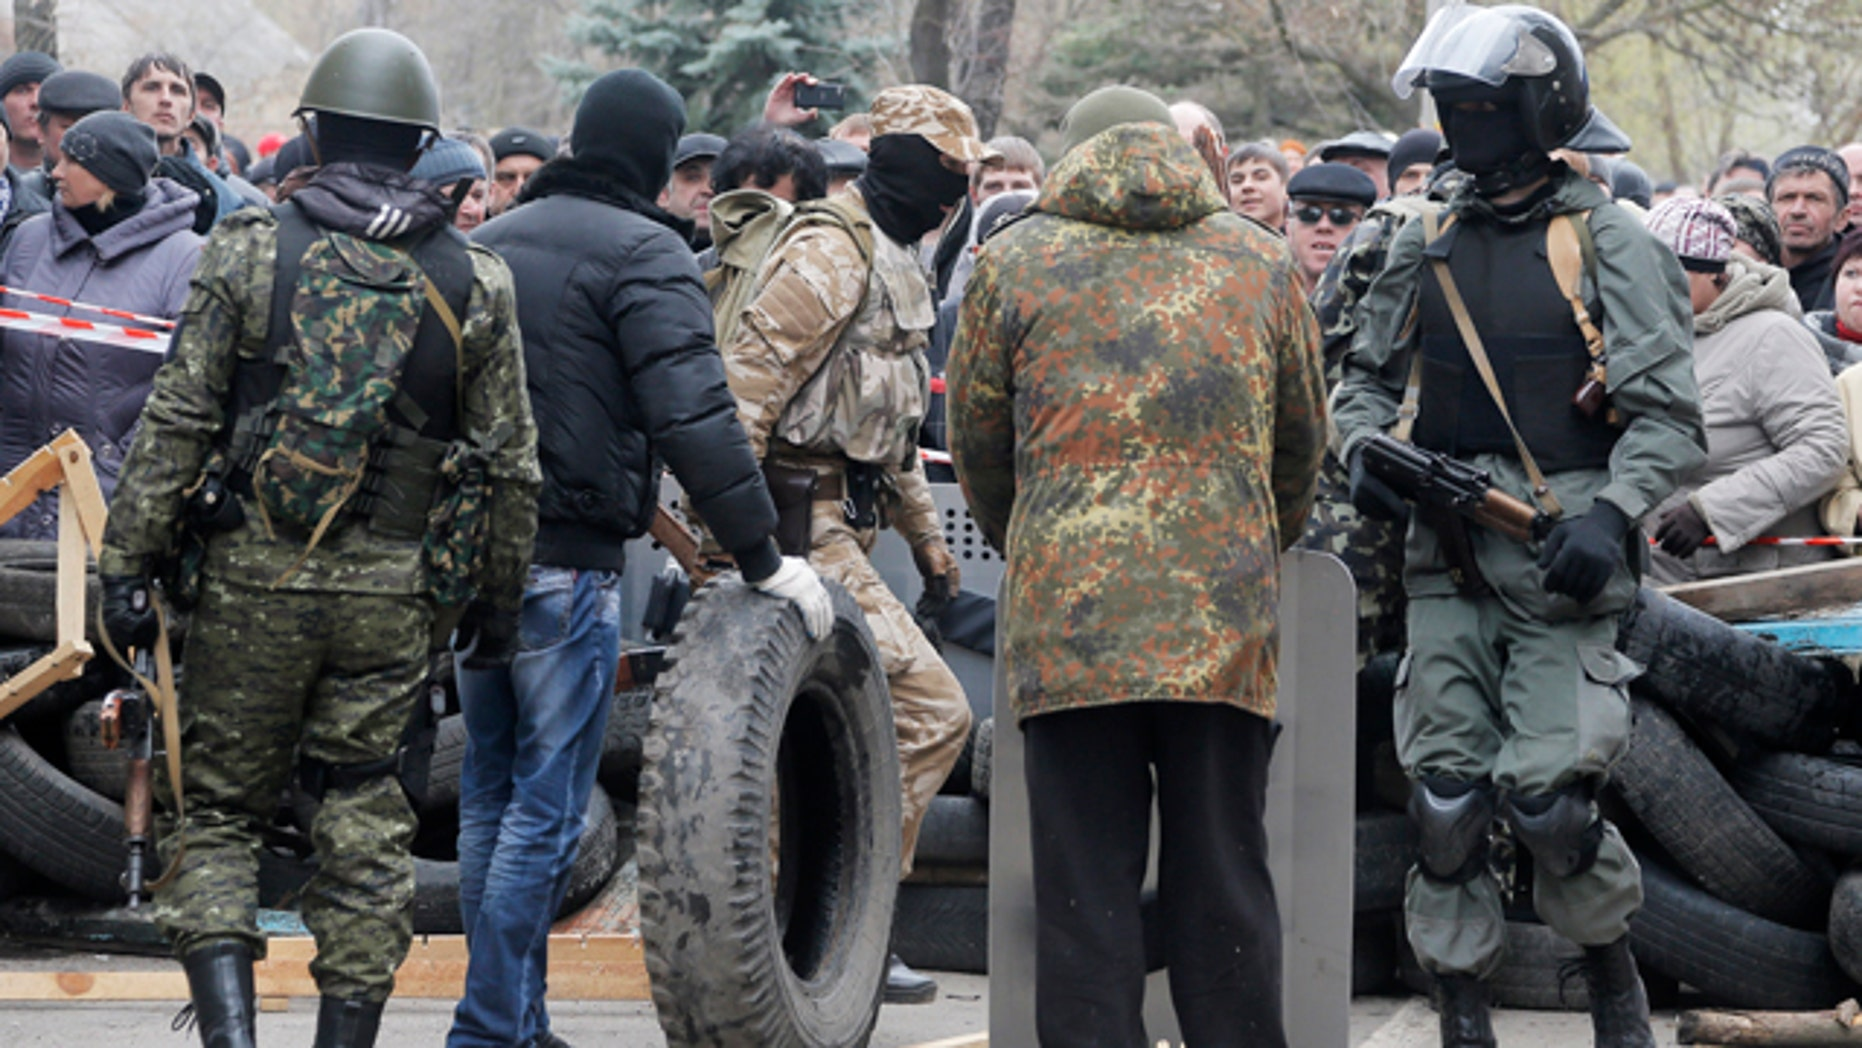 April 12, 2014: Armed pro-Russian activists occupy the police station and build a barricade as people watch on, in the eastern Ukrainian town of Slovyansk. Pro-Moscow protesters have seized a number of government buildings in the east over the past week, undermining the authority of the interim government in the capital, Kiev. (AP Photo/Efrem Lukatsky)